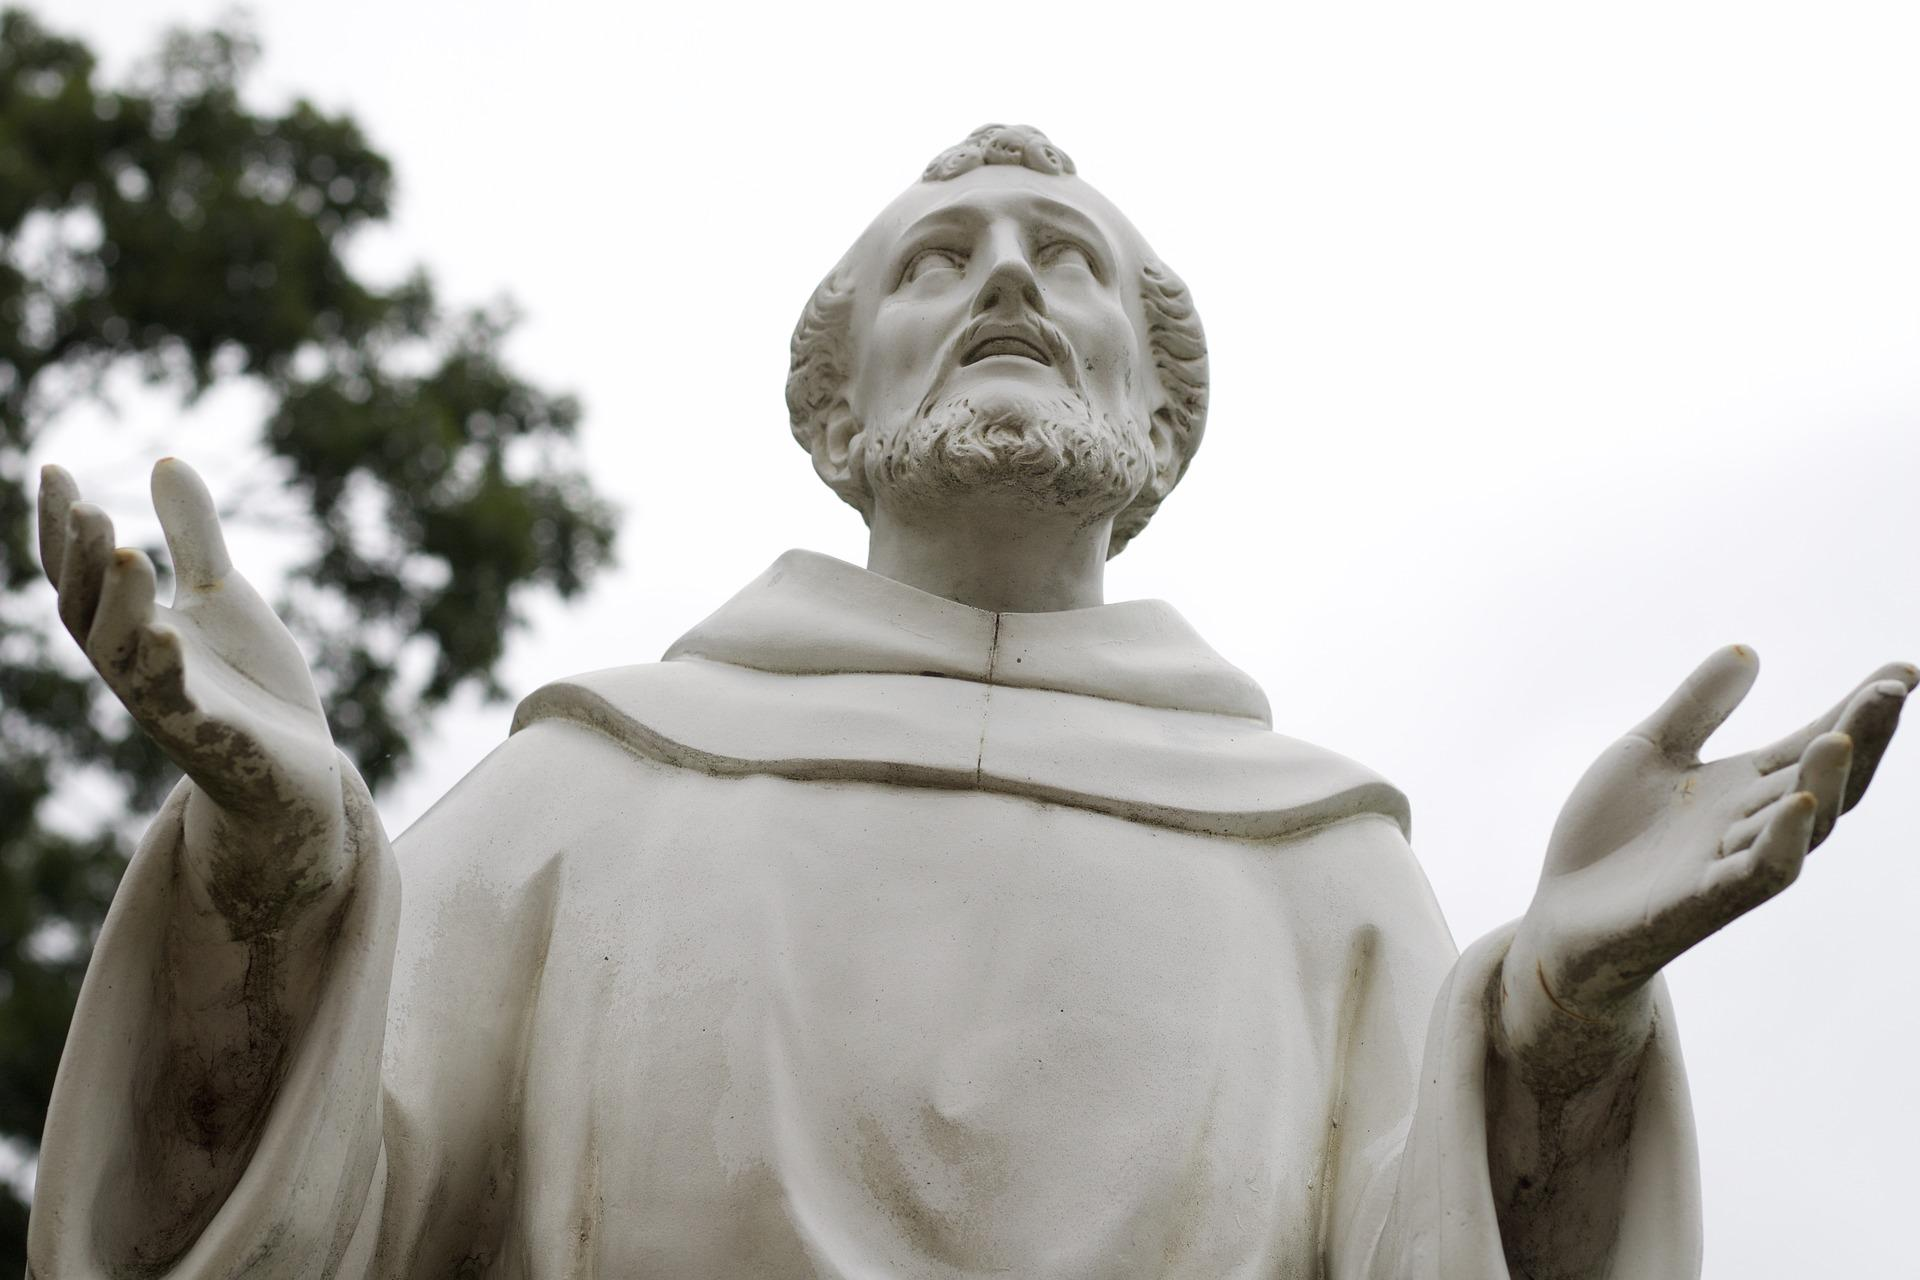 the life and times of st francis of assisi All about saint francis of assisi- his feast day is celebrated on october 4th throughout the world saint francis is a co-patron saint of italy.